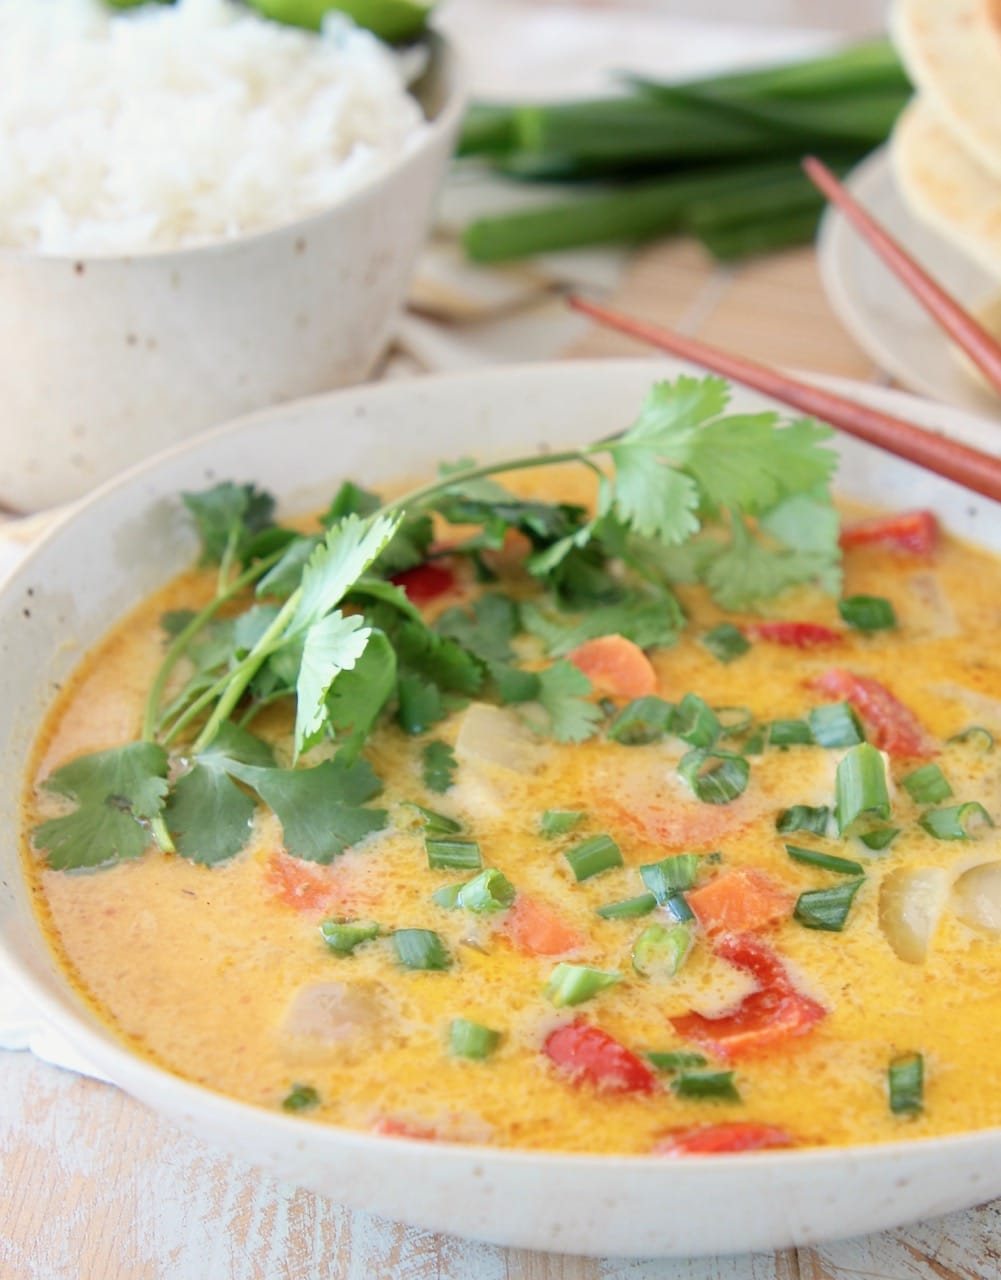 Yellow curry in bowl, topped with fresh cilantro sprigs, with bowl of rice on the side